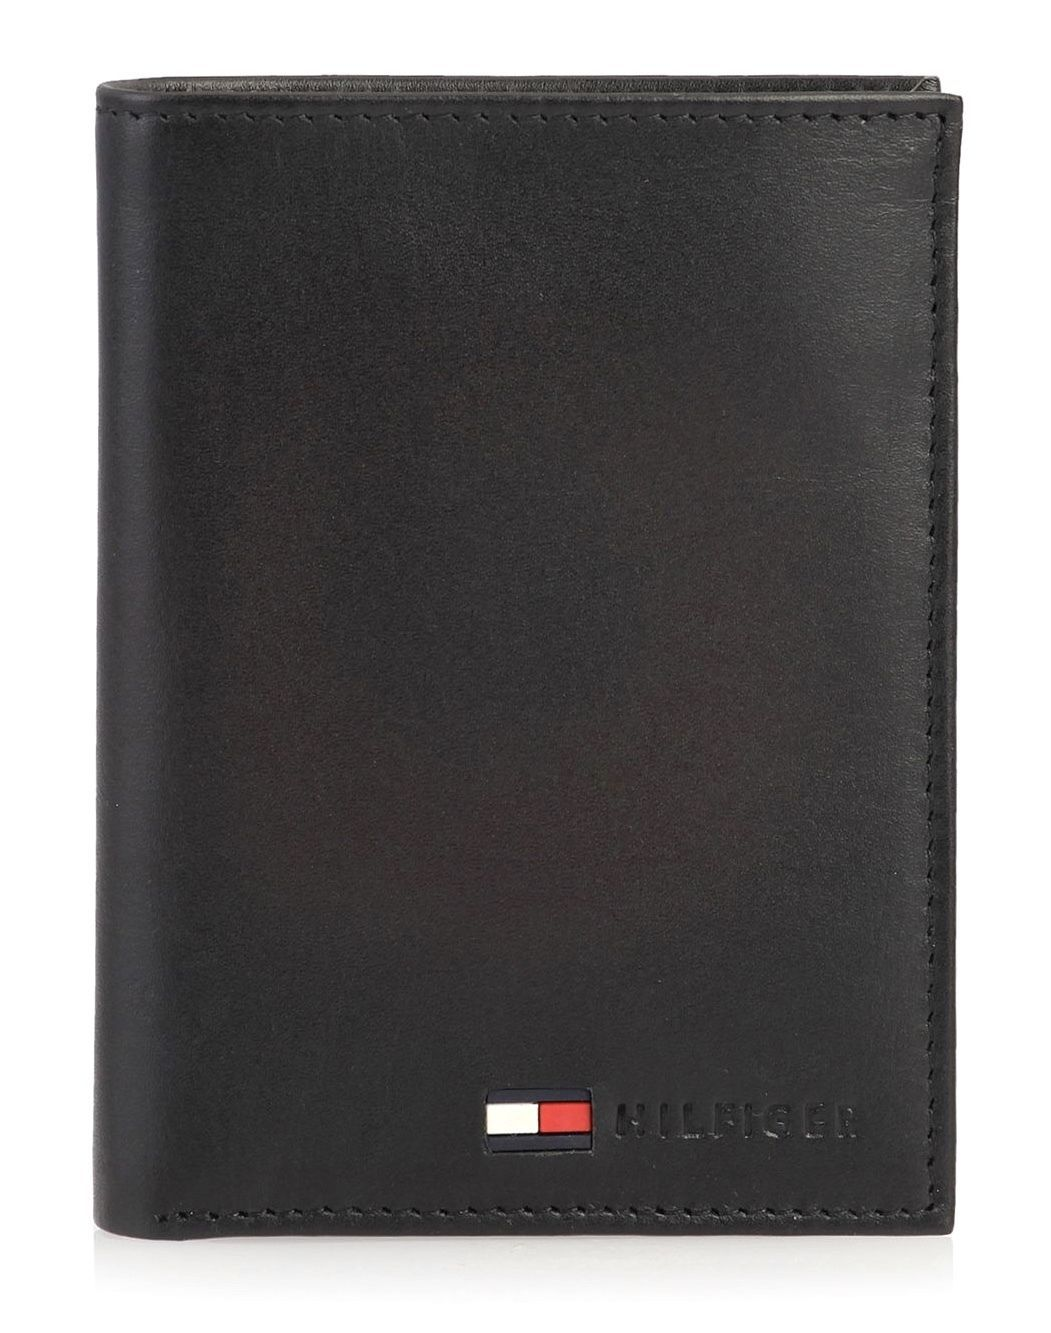 New Tommy Hilfiger Men's Credit Card ID Organizer Big Leather Wallet 31TL19X021